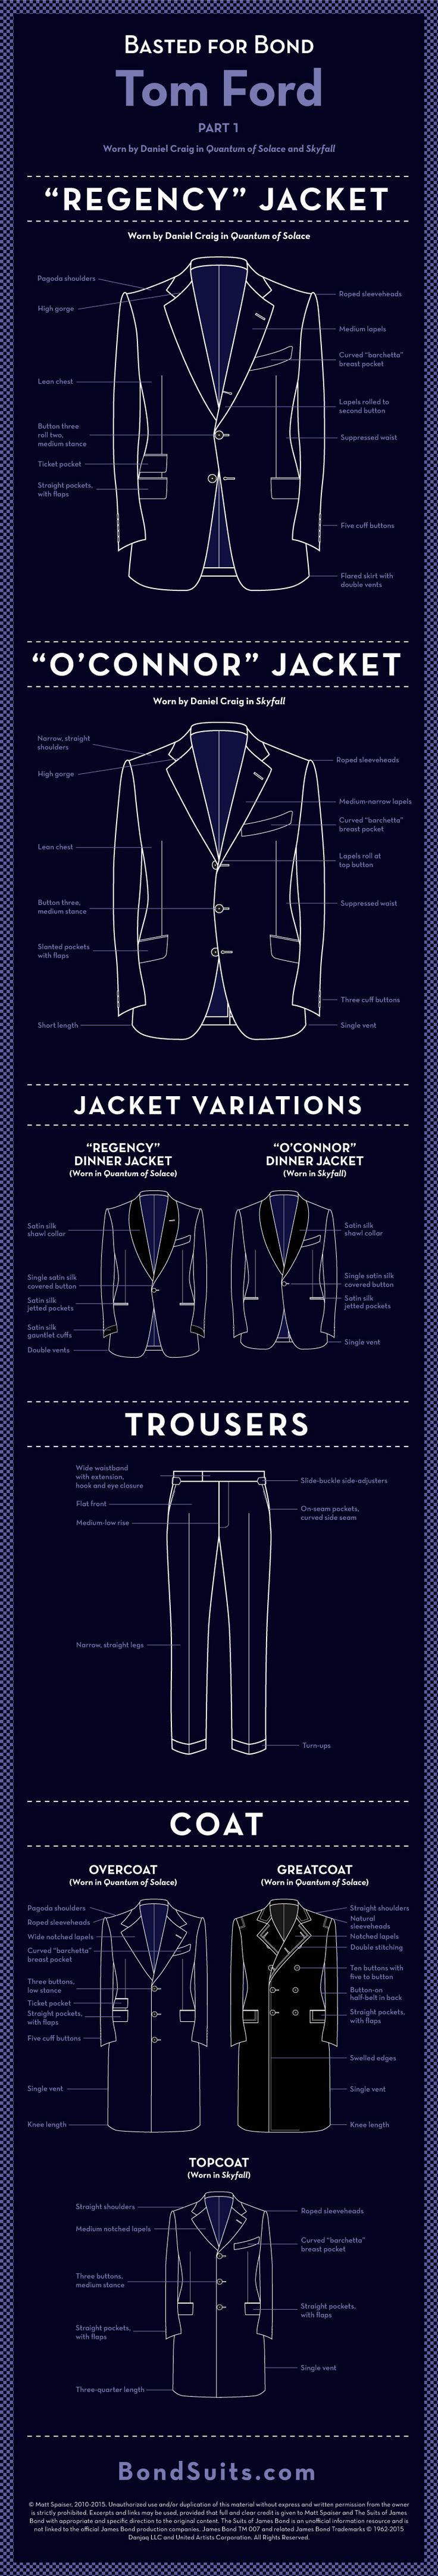 """This week's""""Basted for Bond"""" infographic looks atthe Tom Ford suits and coats that Daniel Craig wears in Quantum of Solace and Skyfall. This infographic details the differences between the """"Regency"""" suit jacket fromQuantum of Solaceand the """"O'Connor"""" suit jacket. Breakdowns … Continue reading →"""